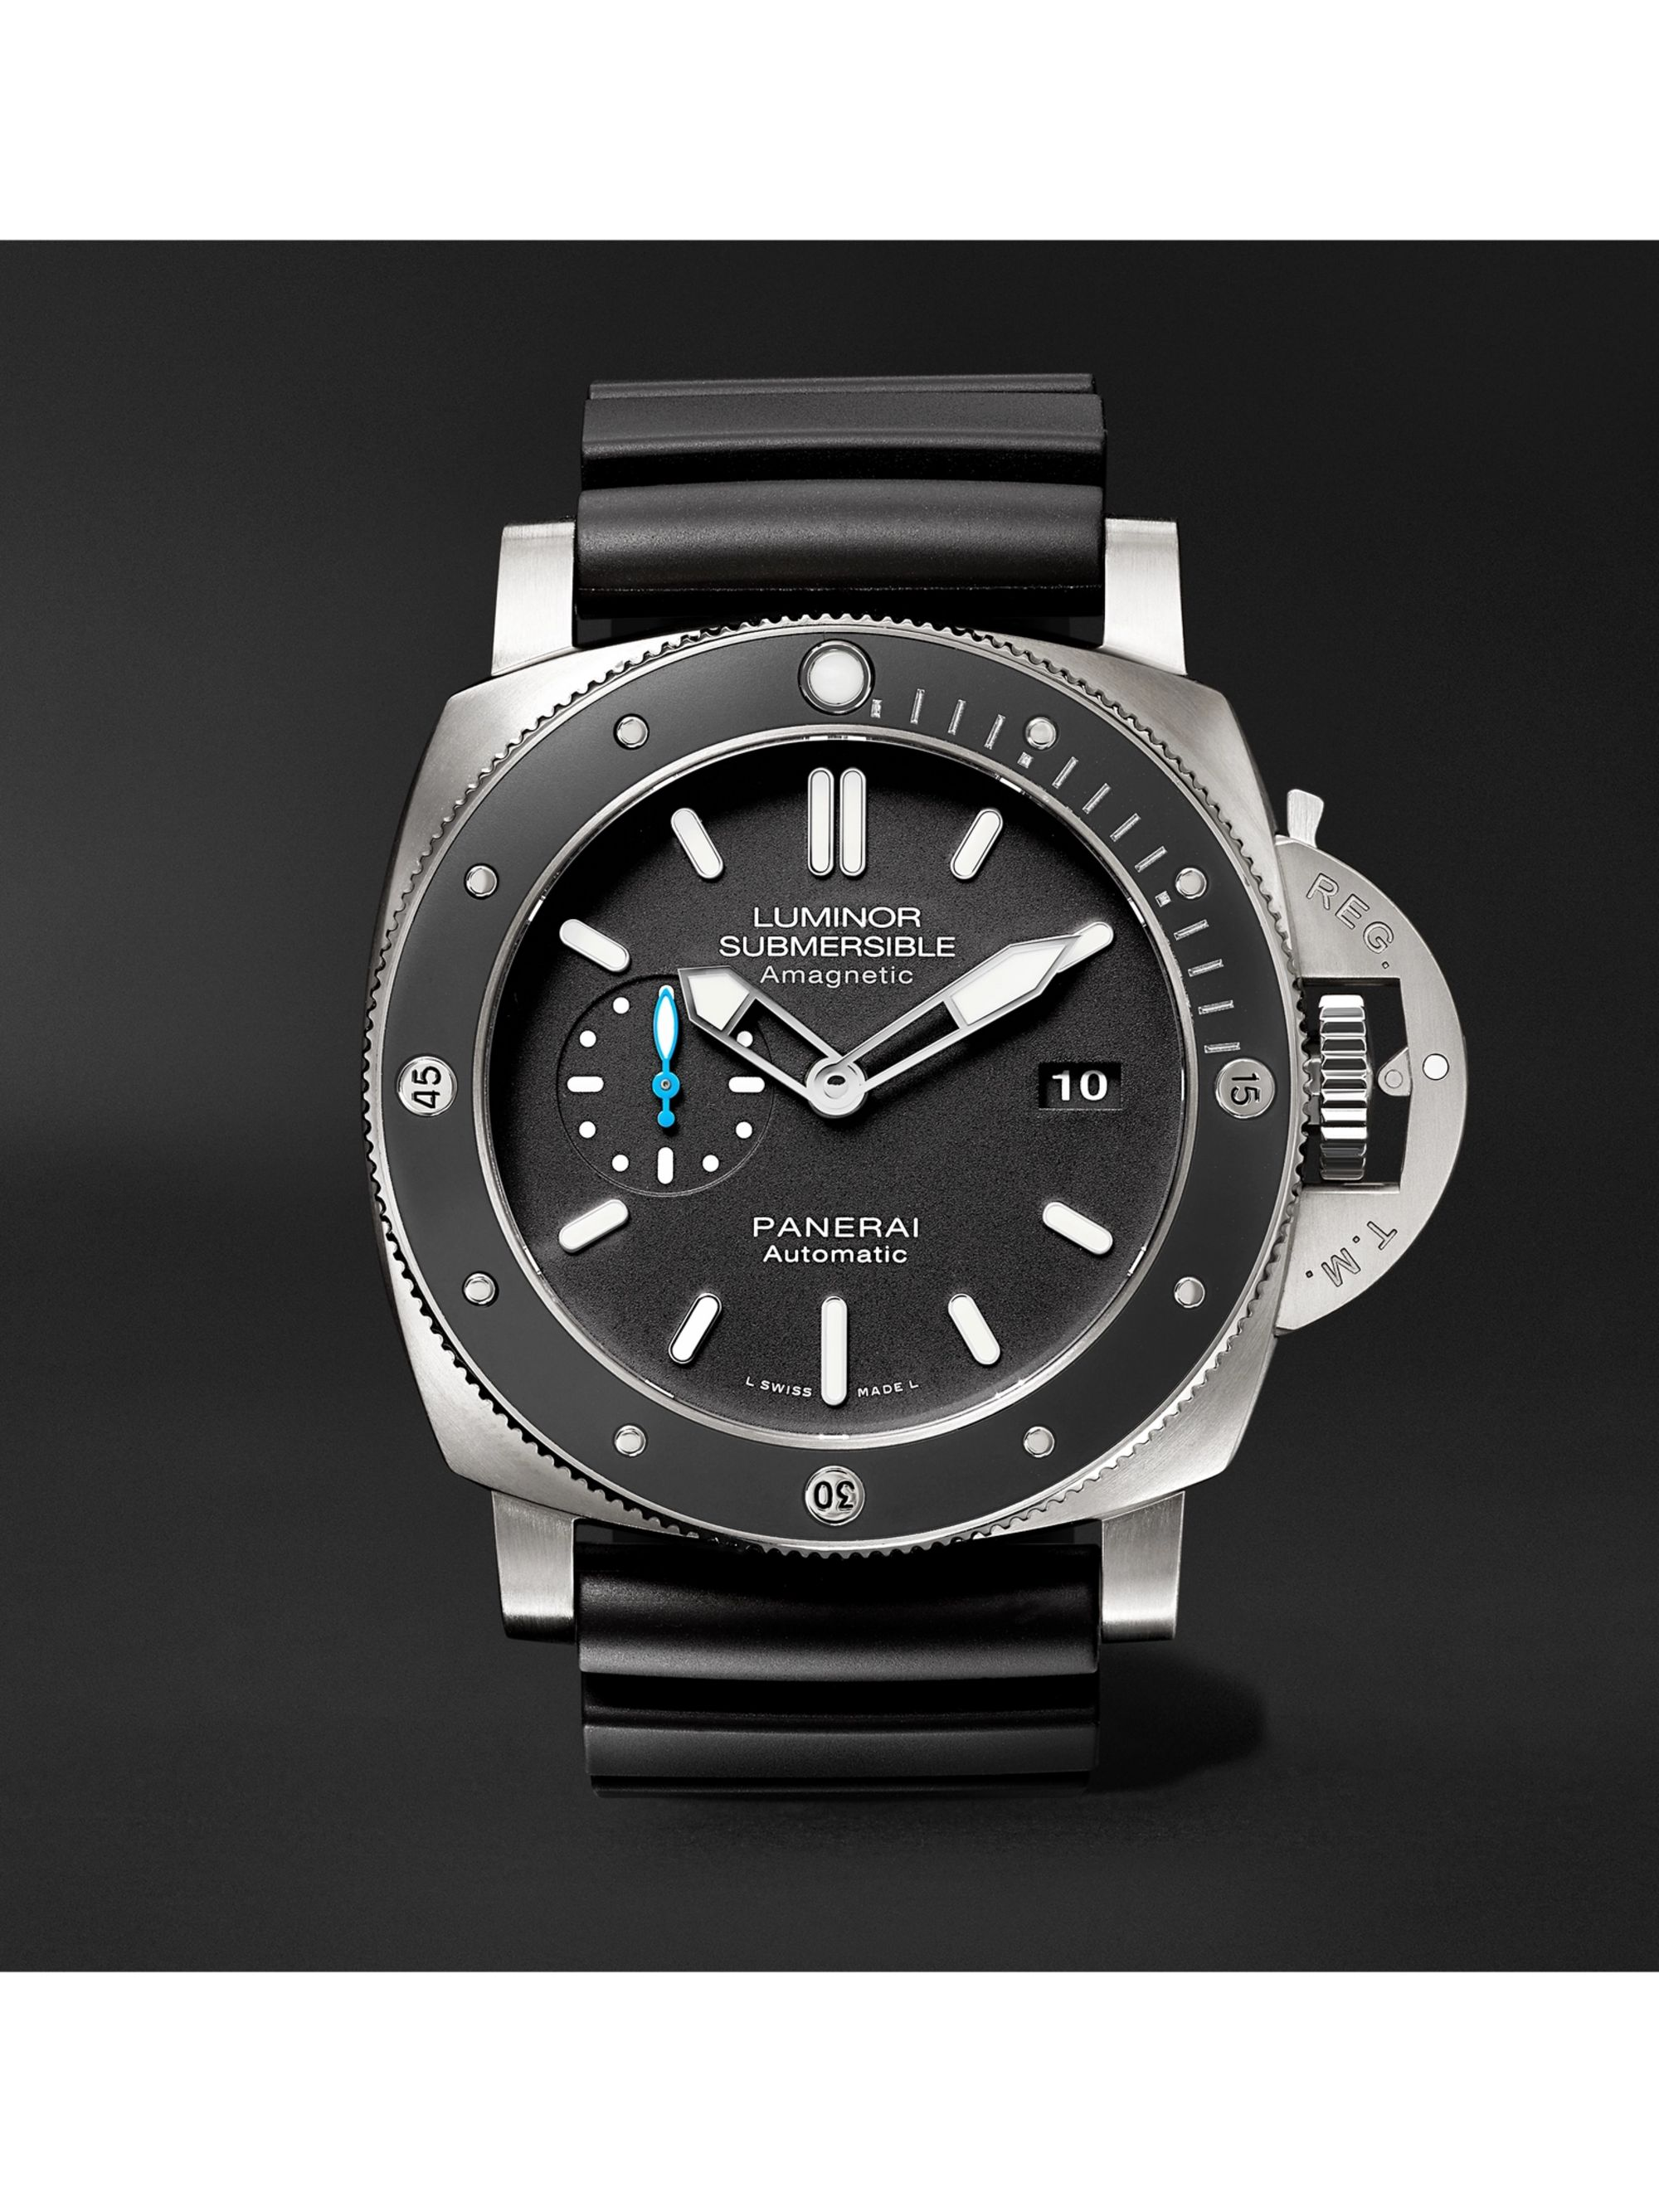 Panerai Luminor Submersible 1950 Amagnetic 3 Days Automatic 47mm Titanium and Rubber Watch, Ref. No. PAM01389